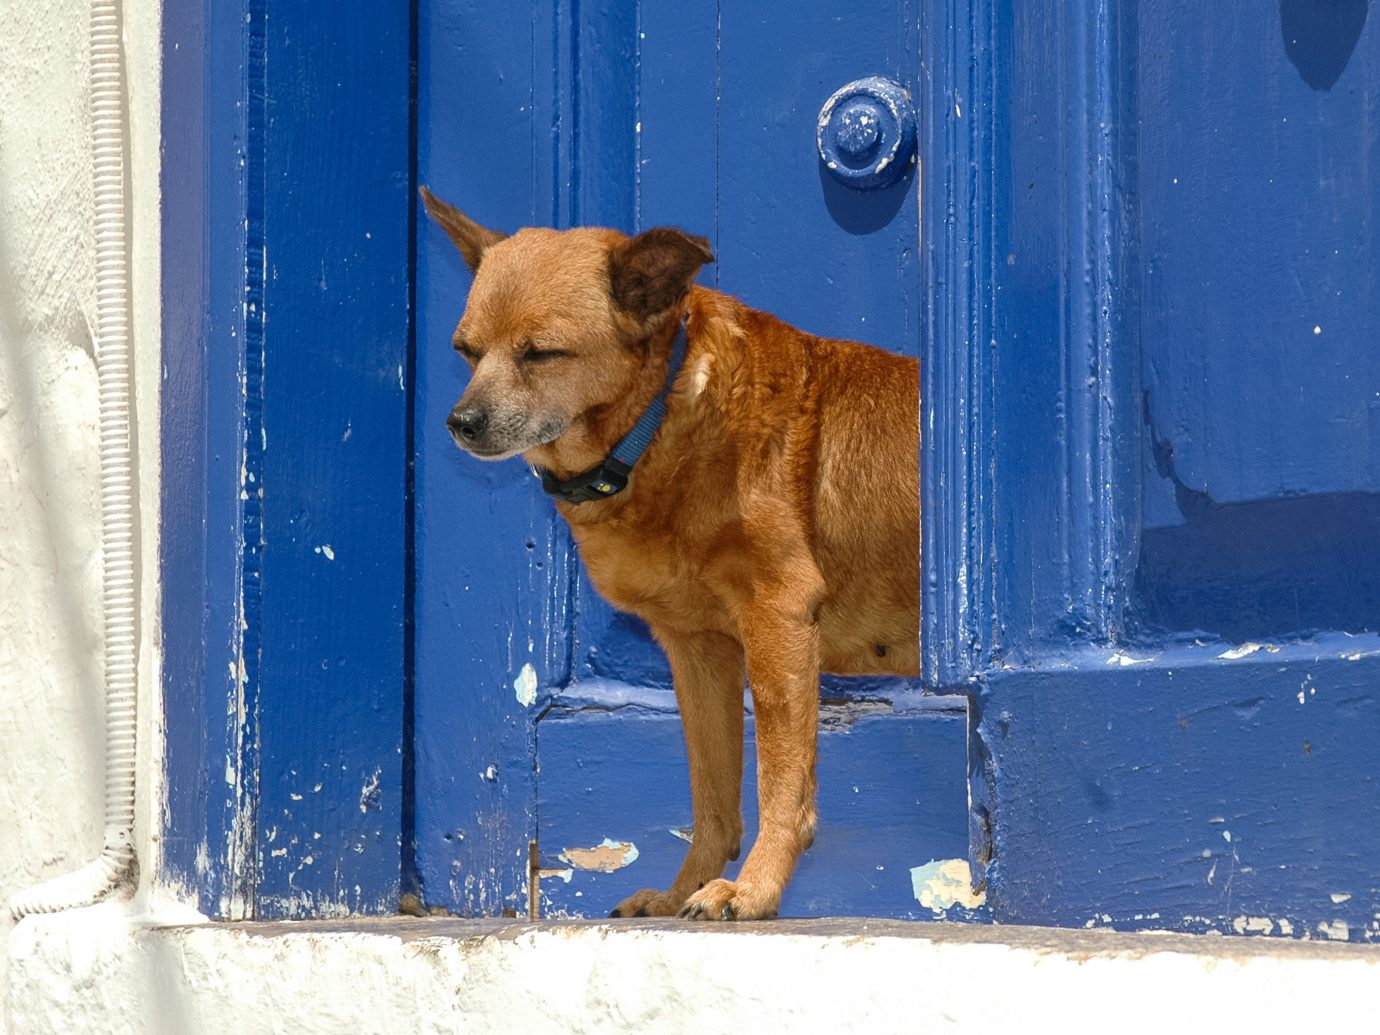 Offbeat Trip Ideas Dog building blue brown outdoor mammal dog breed group snow street dog door Winter black puppy dog like mammal animal shelter doorway staring